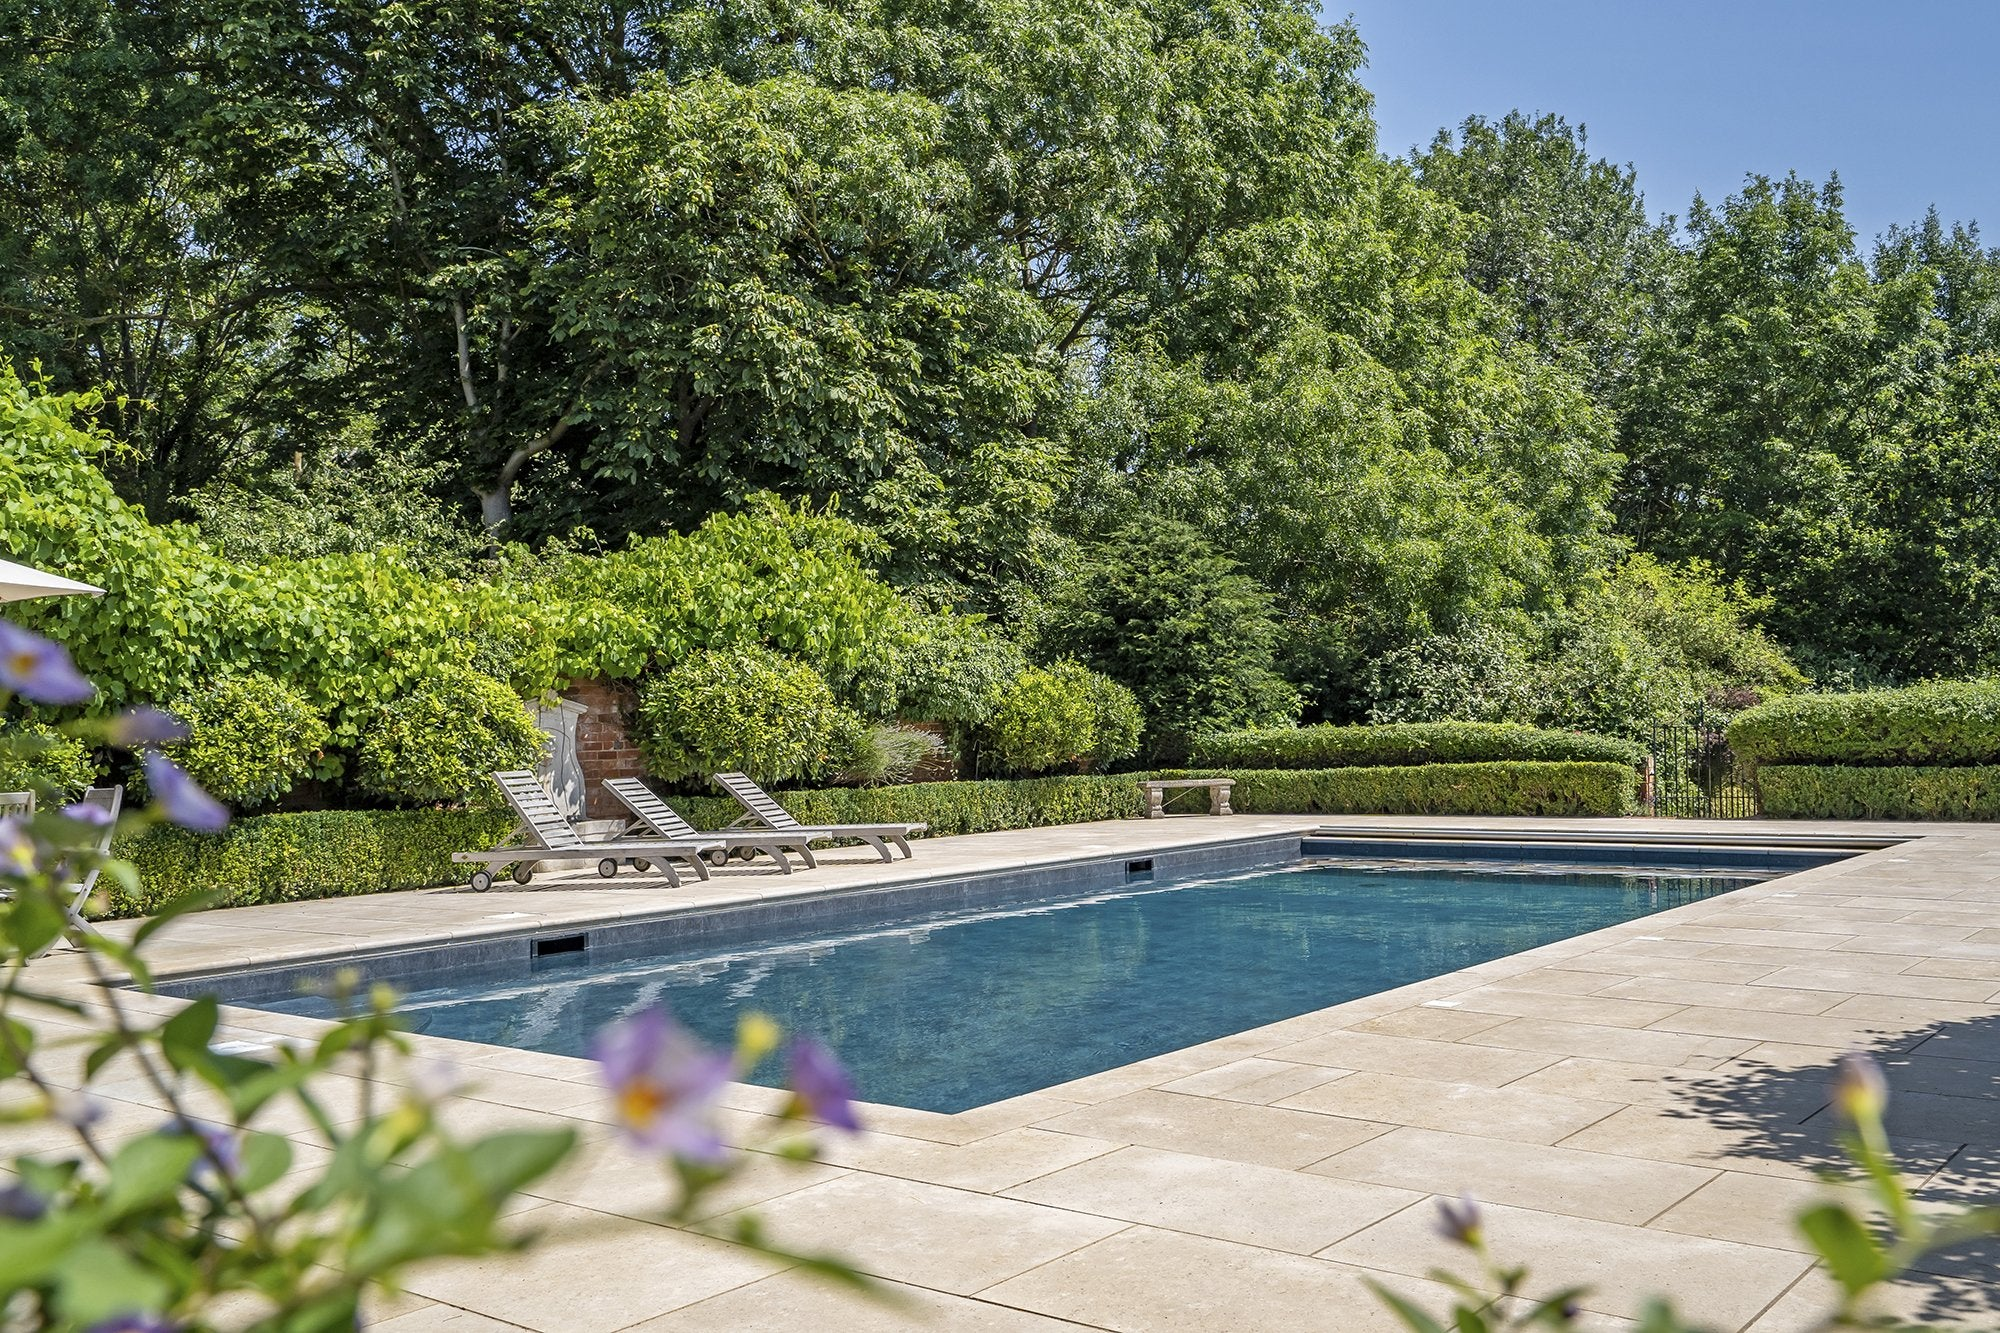 Swimming Pool Building Regulations What You Need To Know Deep End Pools